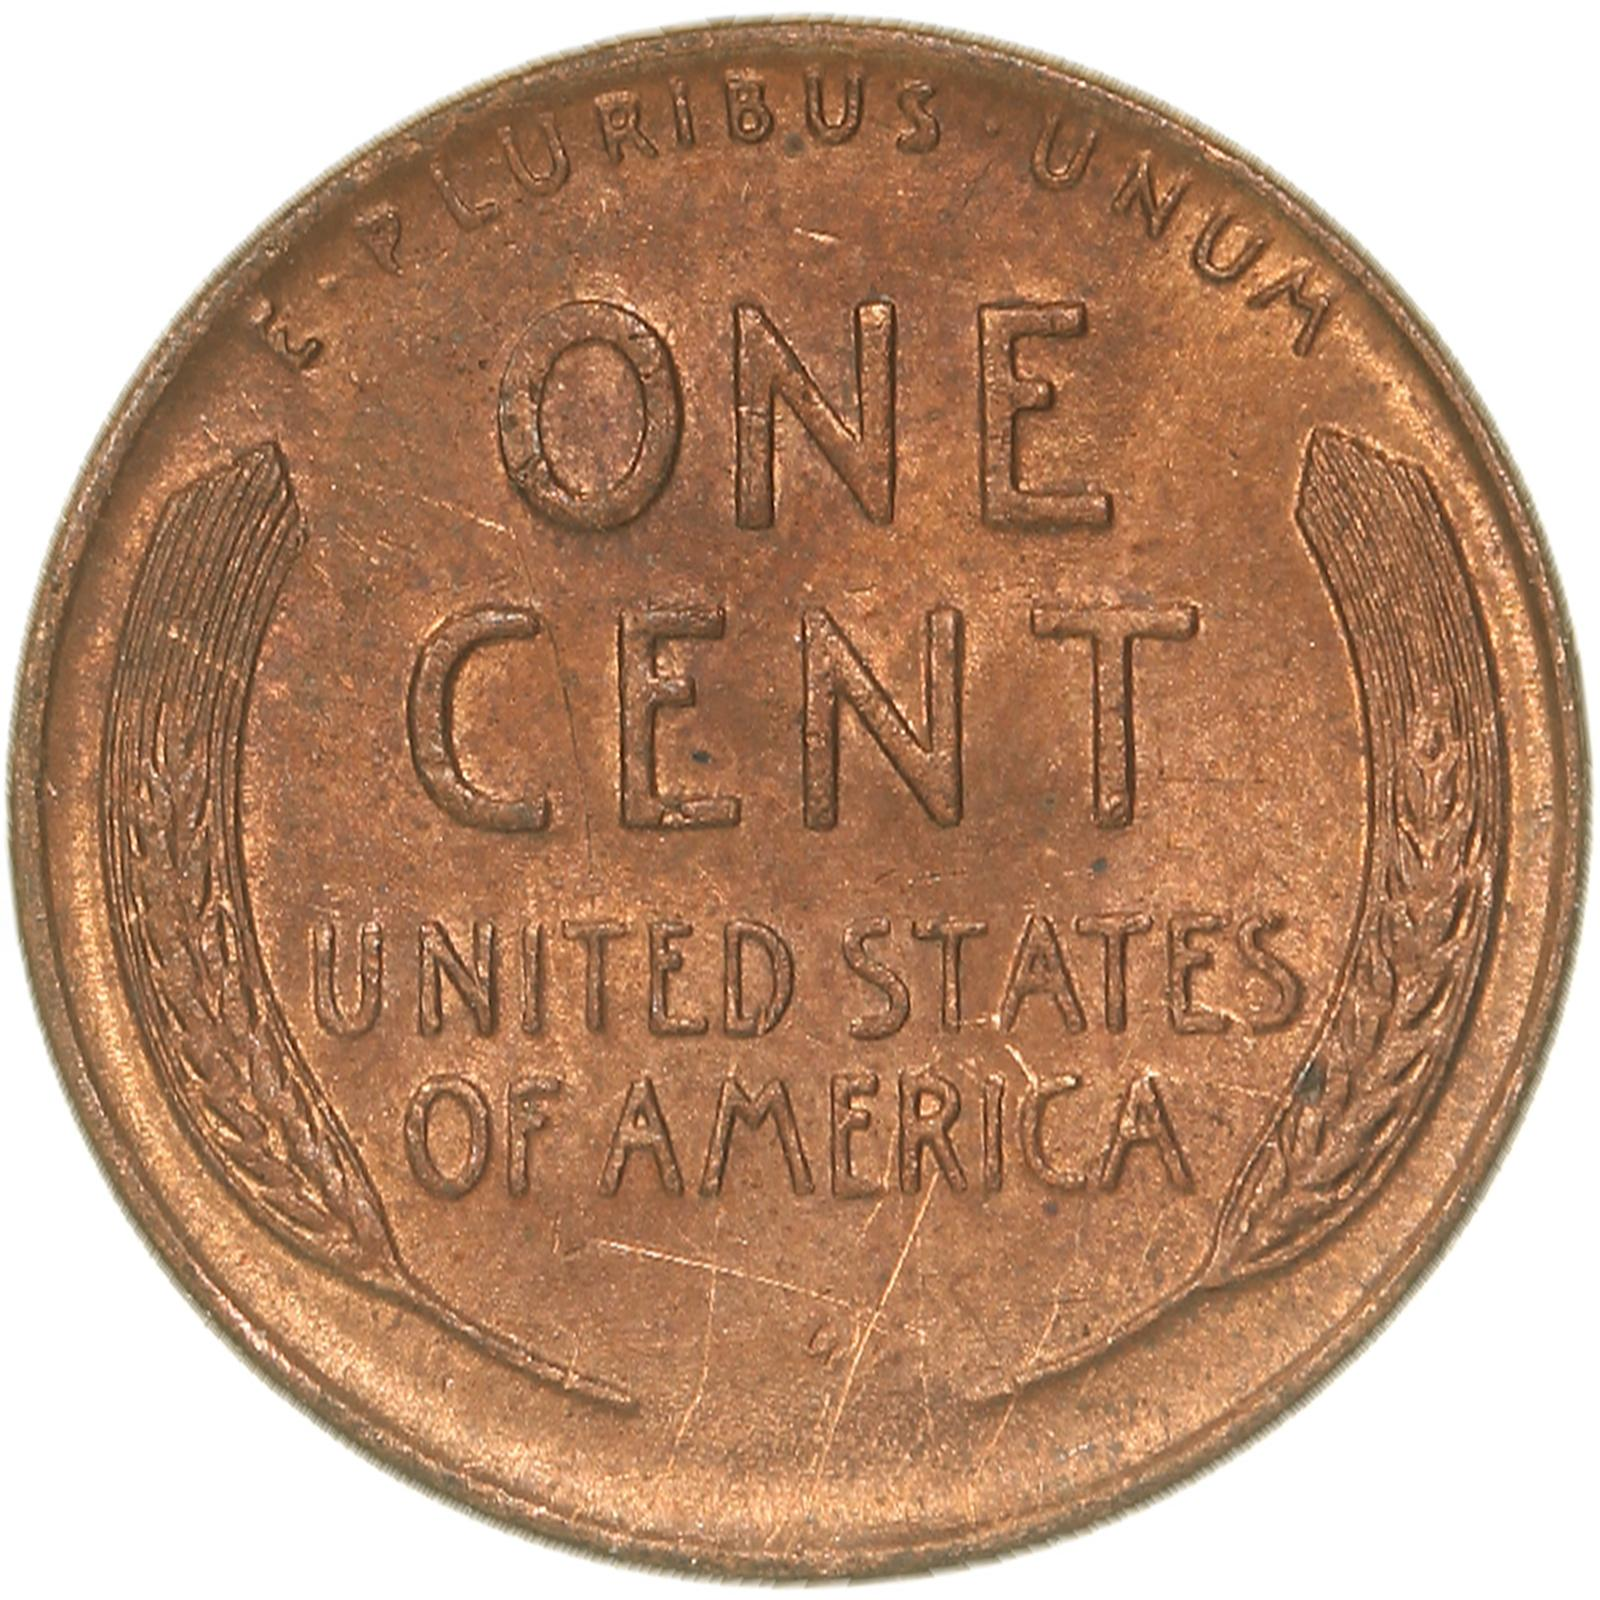 1920 Lincoln Cent almost uncirculated